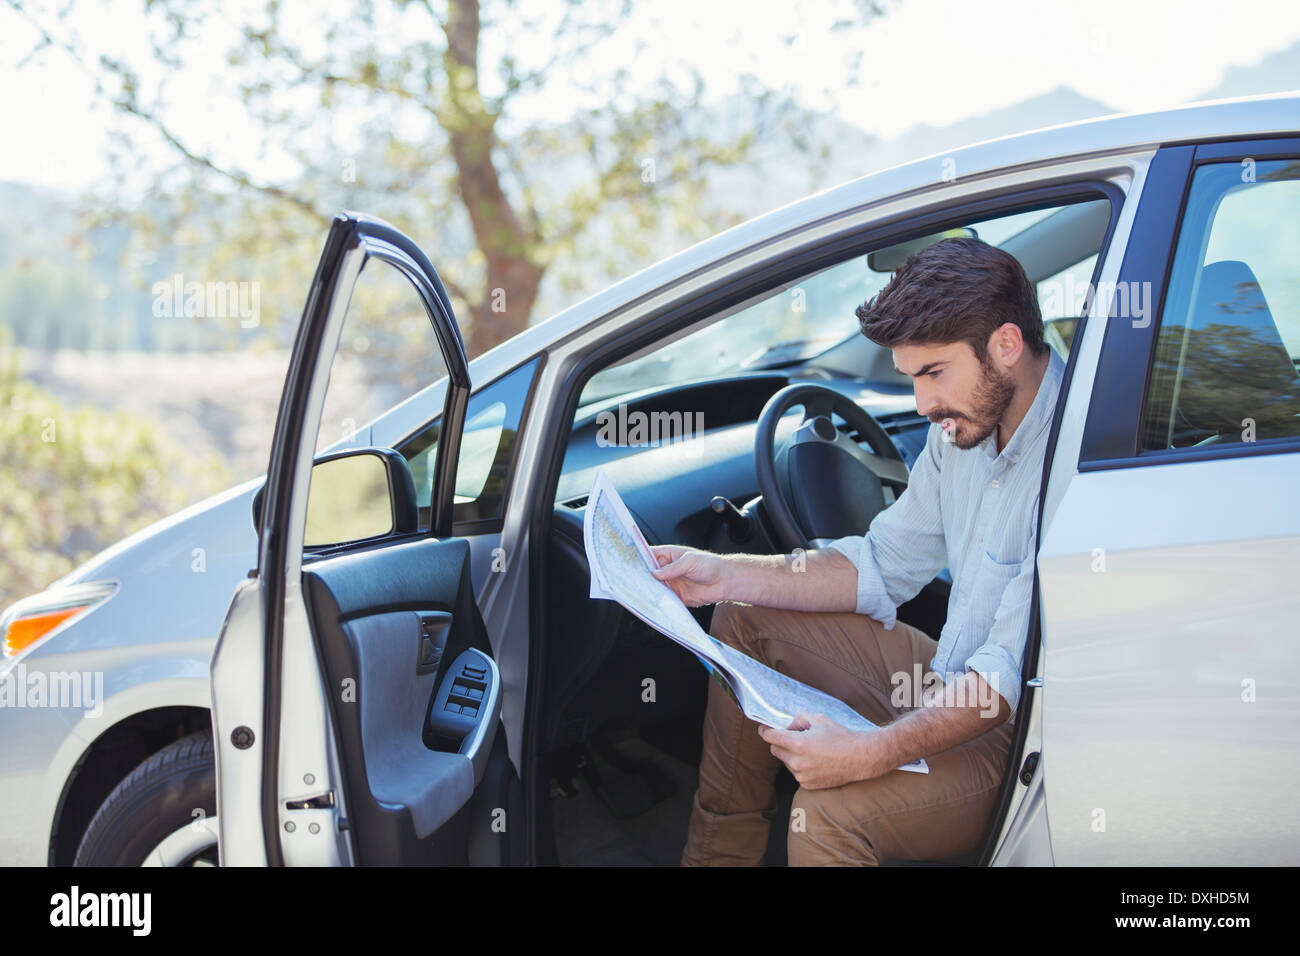 Man in car looking at map - Stock Image